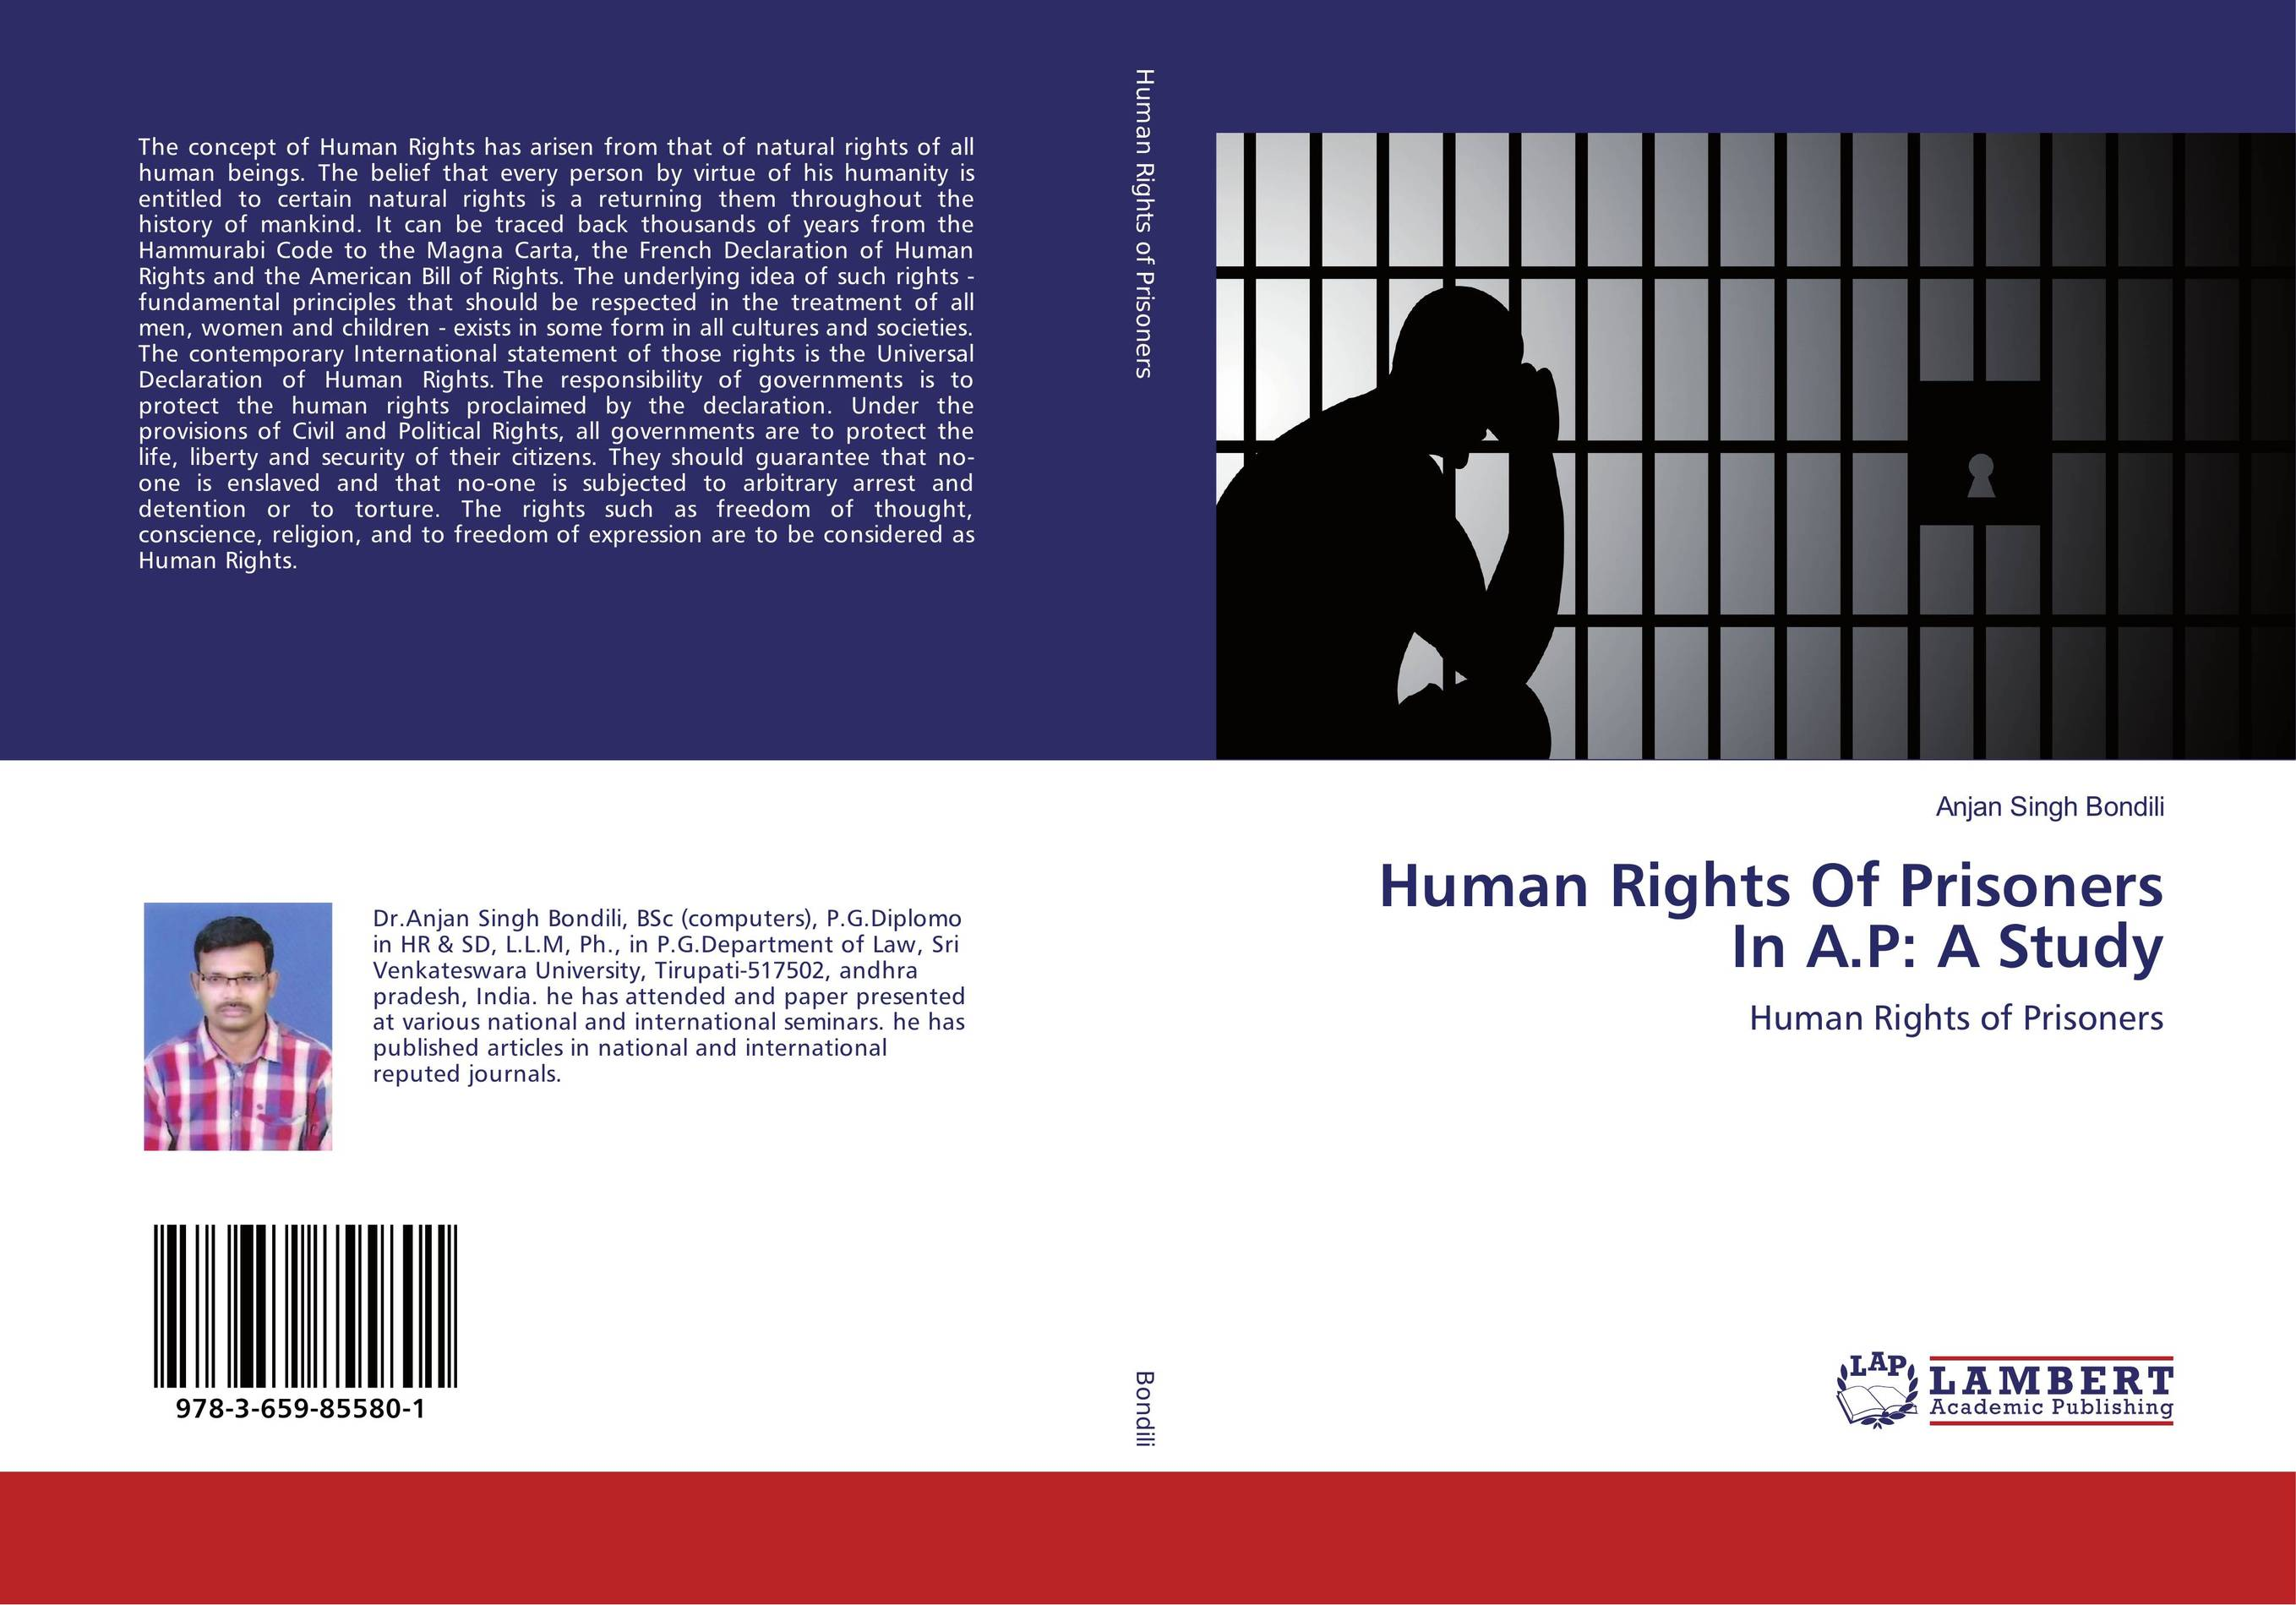 Human Rights Of Prisoners In A.P: A Study education training and human rights of the prisoners